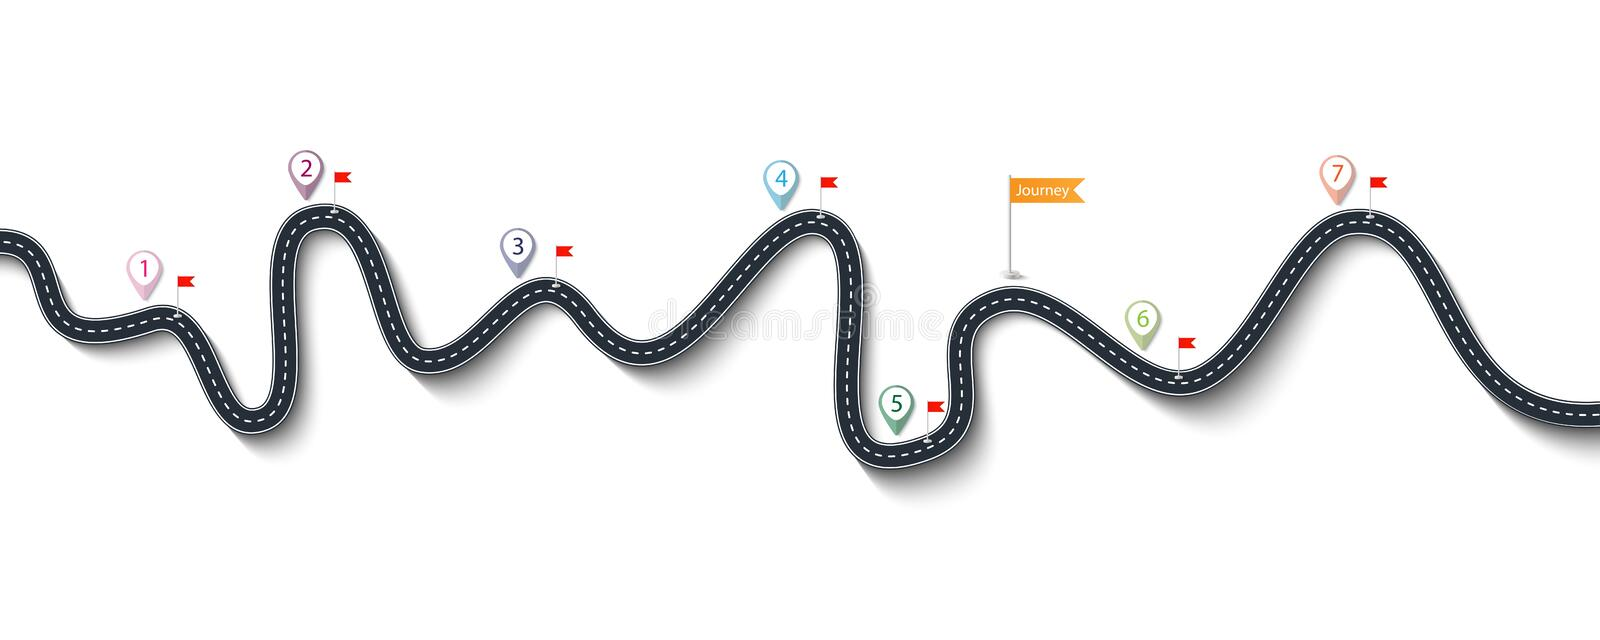 Road trip and Journey route. Winding Road on a White Isolated Background with Flags and Pin Pointers stock illustration